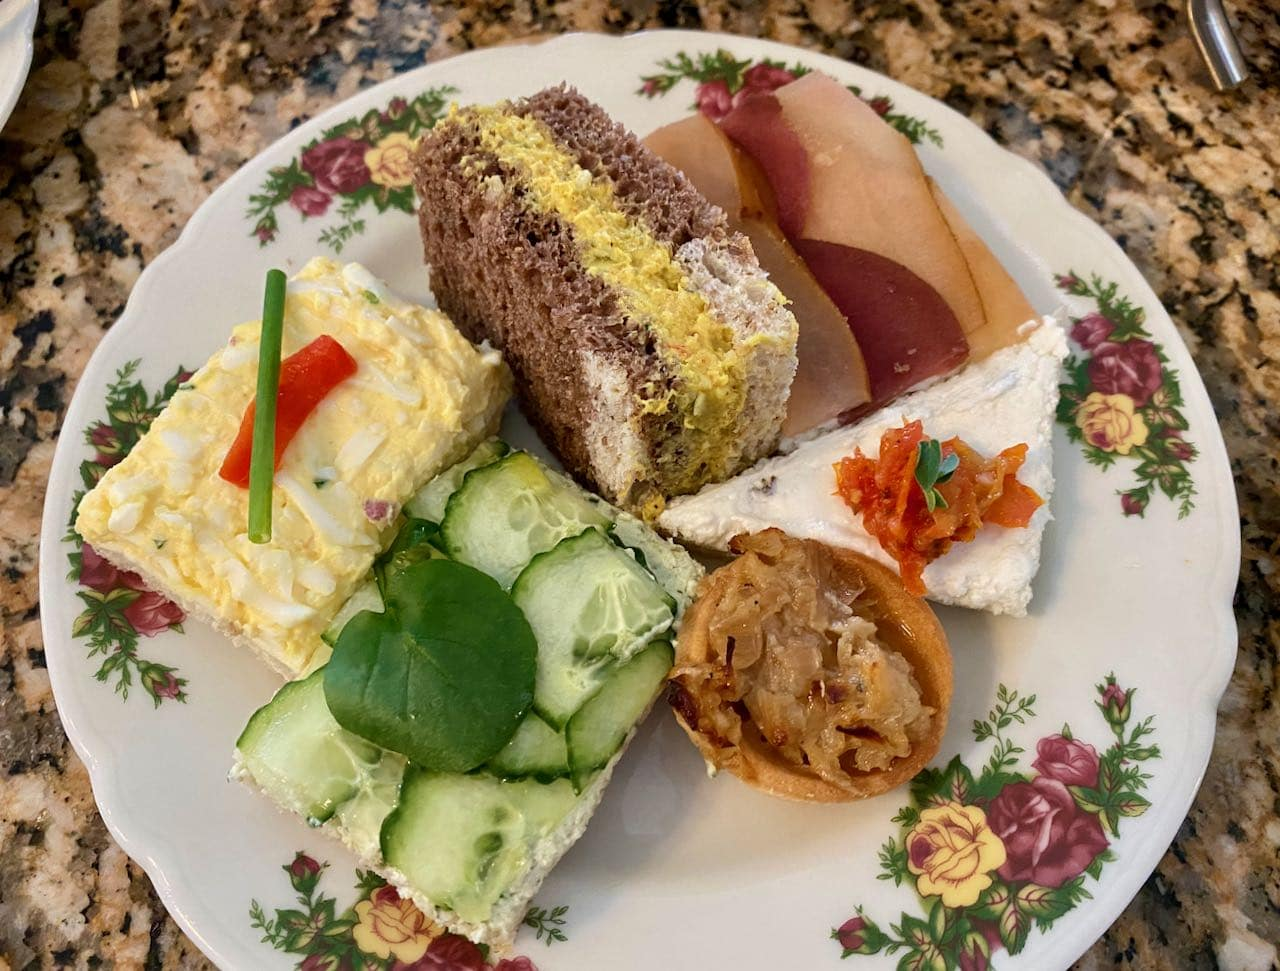 Sandwiches Afternoon Tea Disney's Grand Floridian Resort & Spa Orlando review